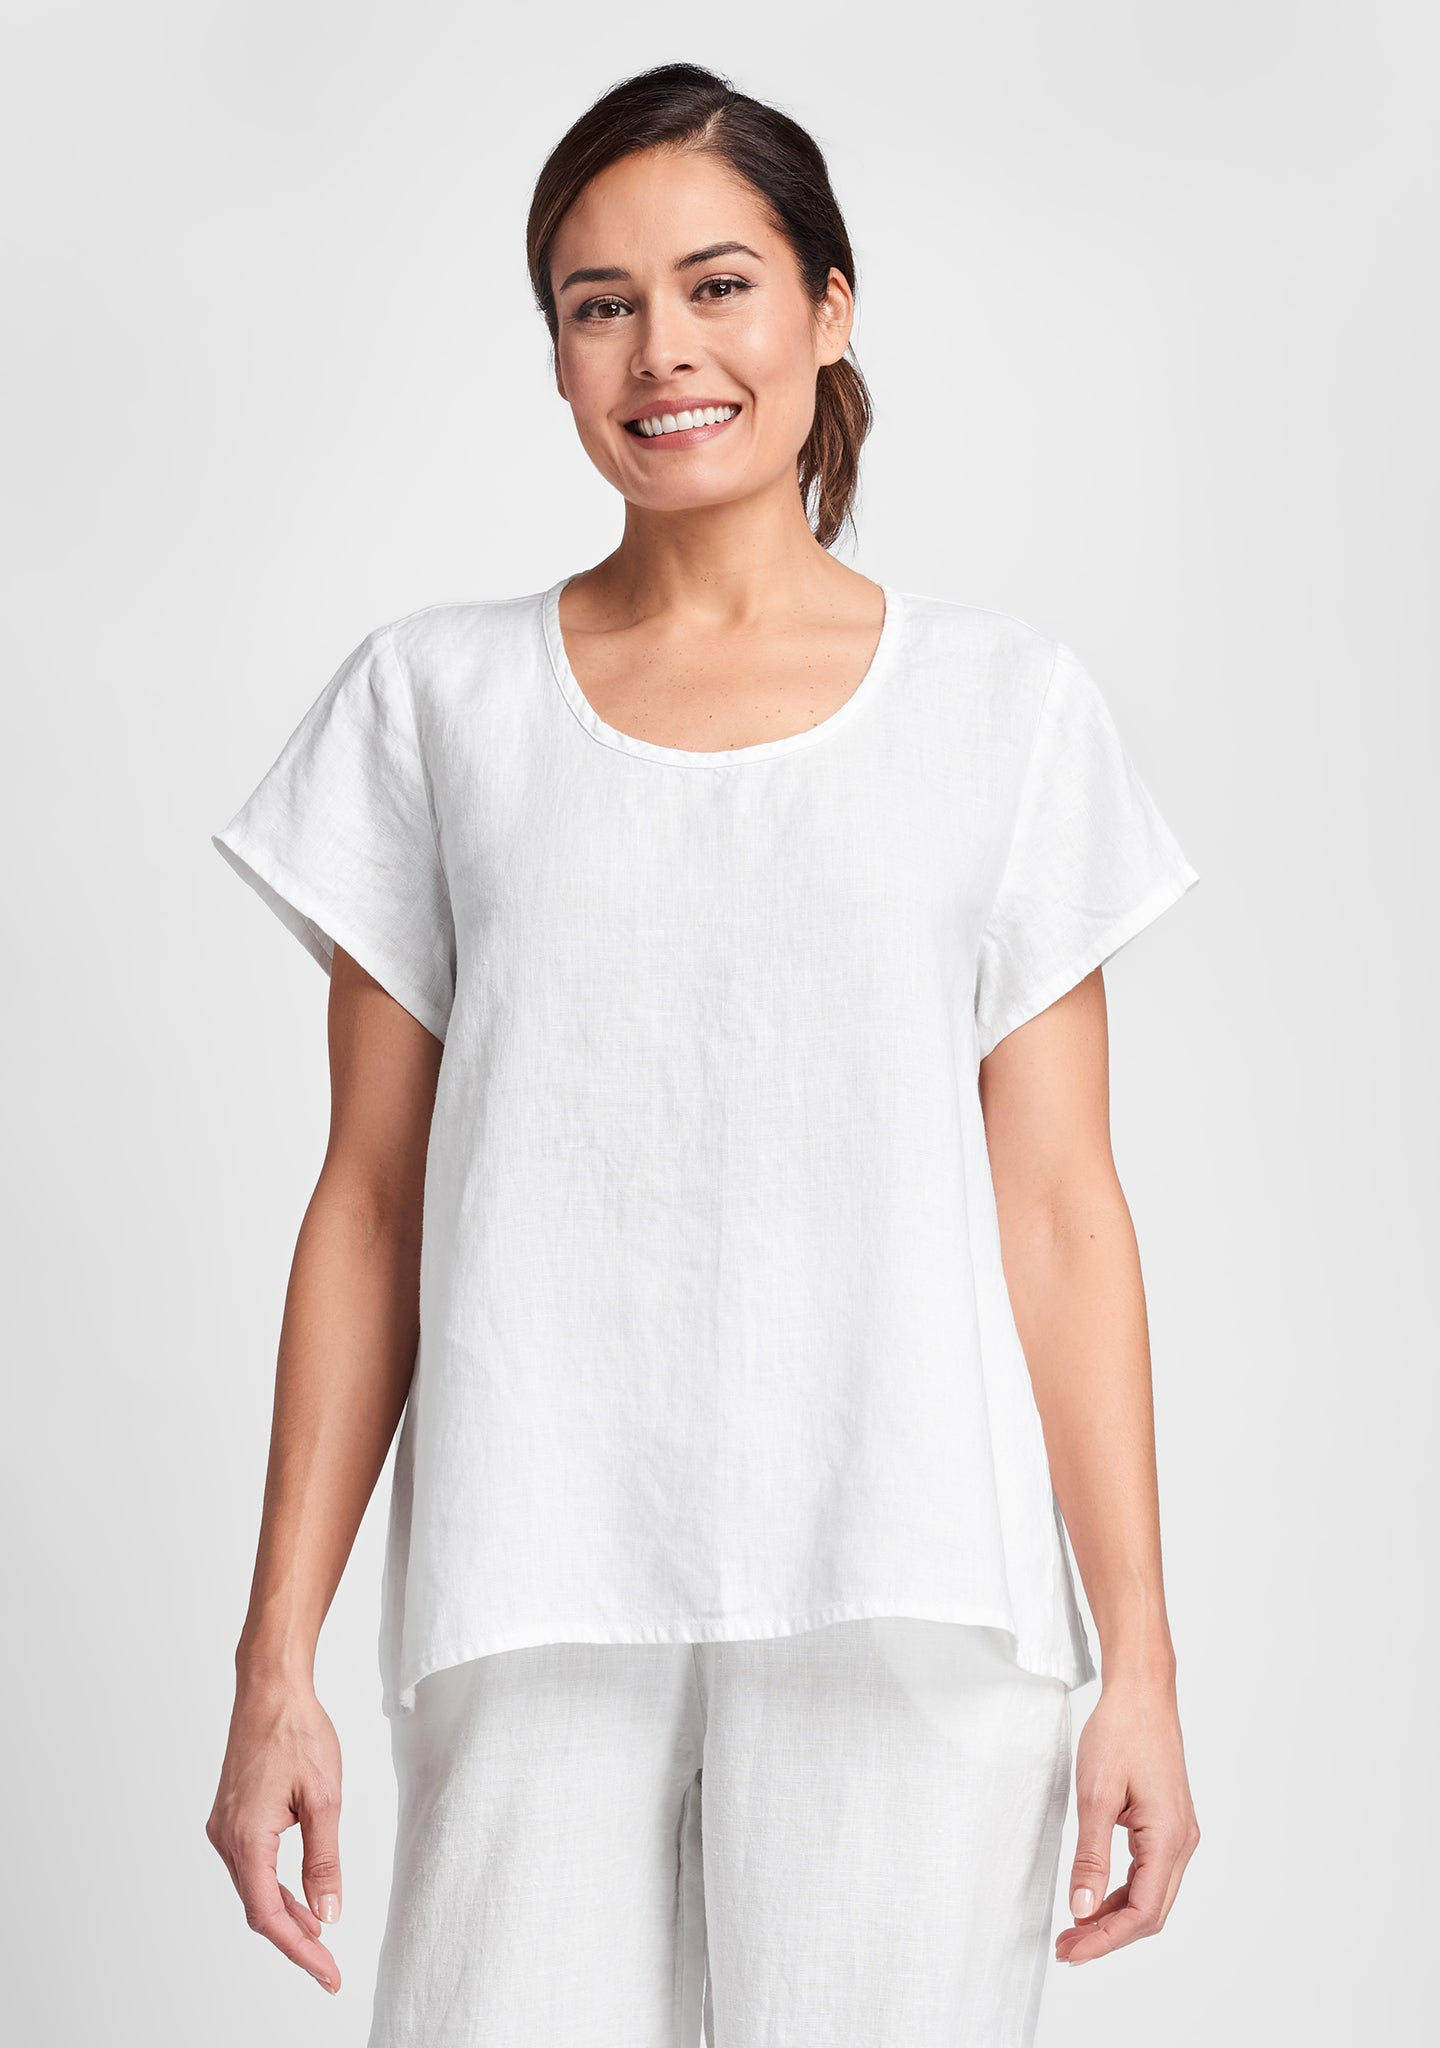 weightless tee linen t shirt white